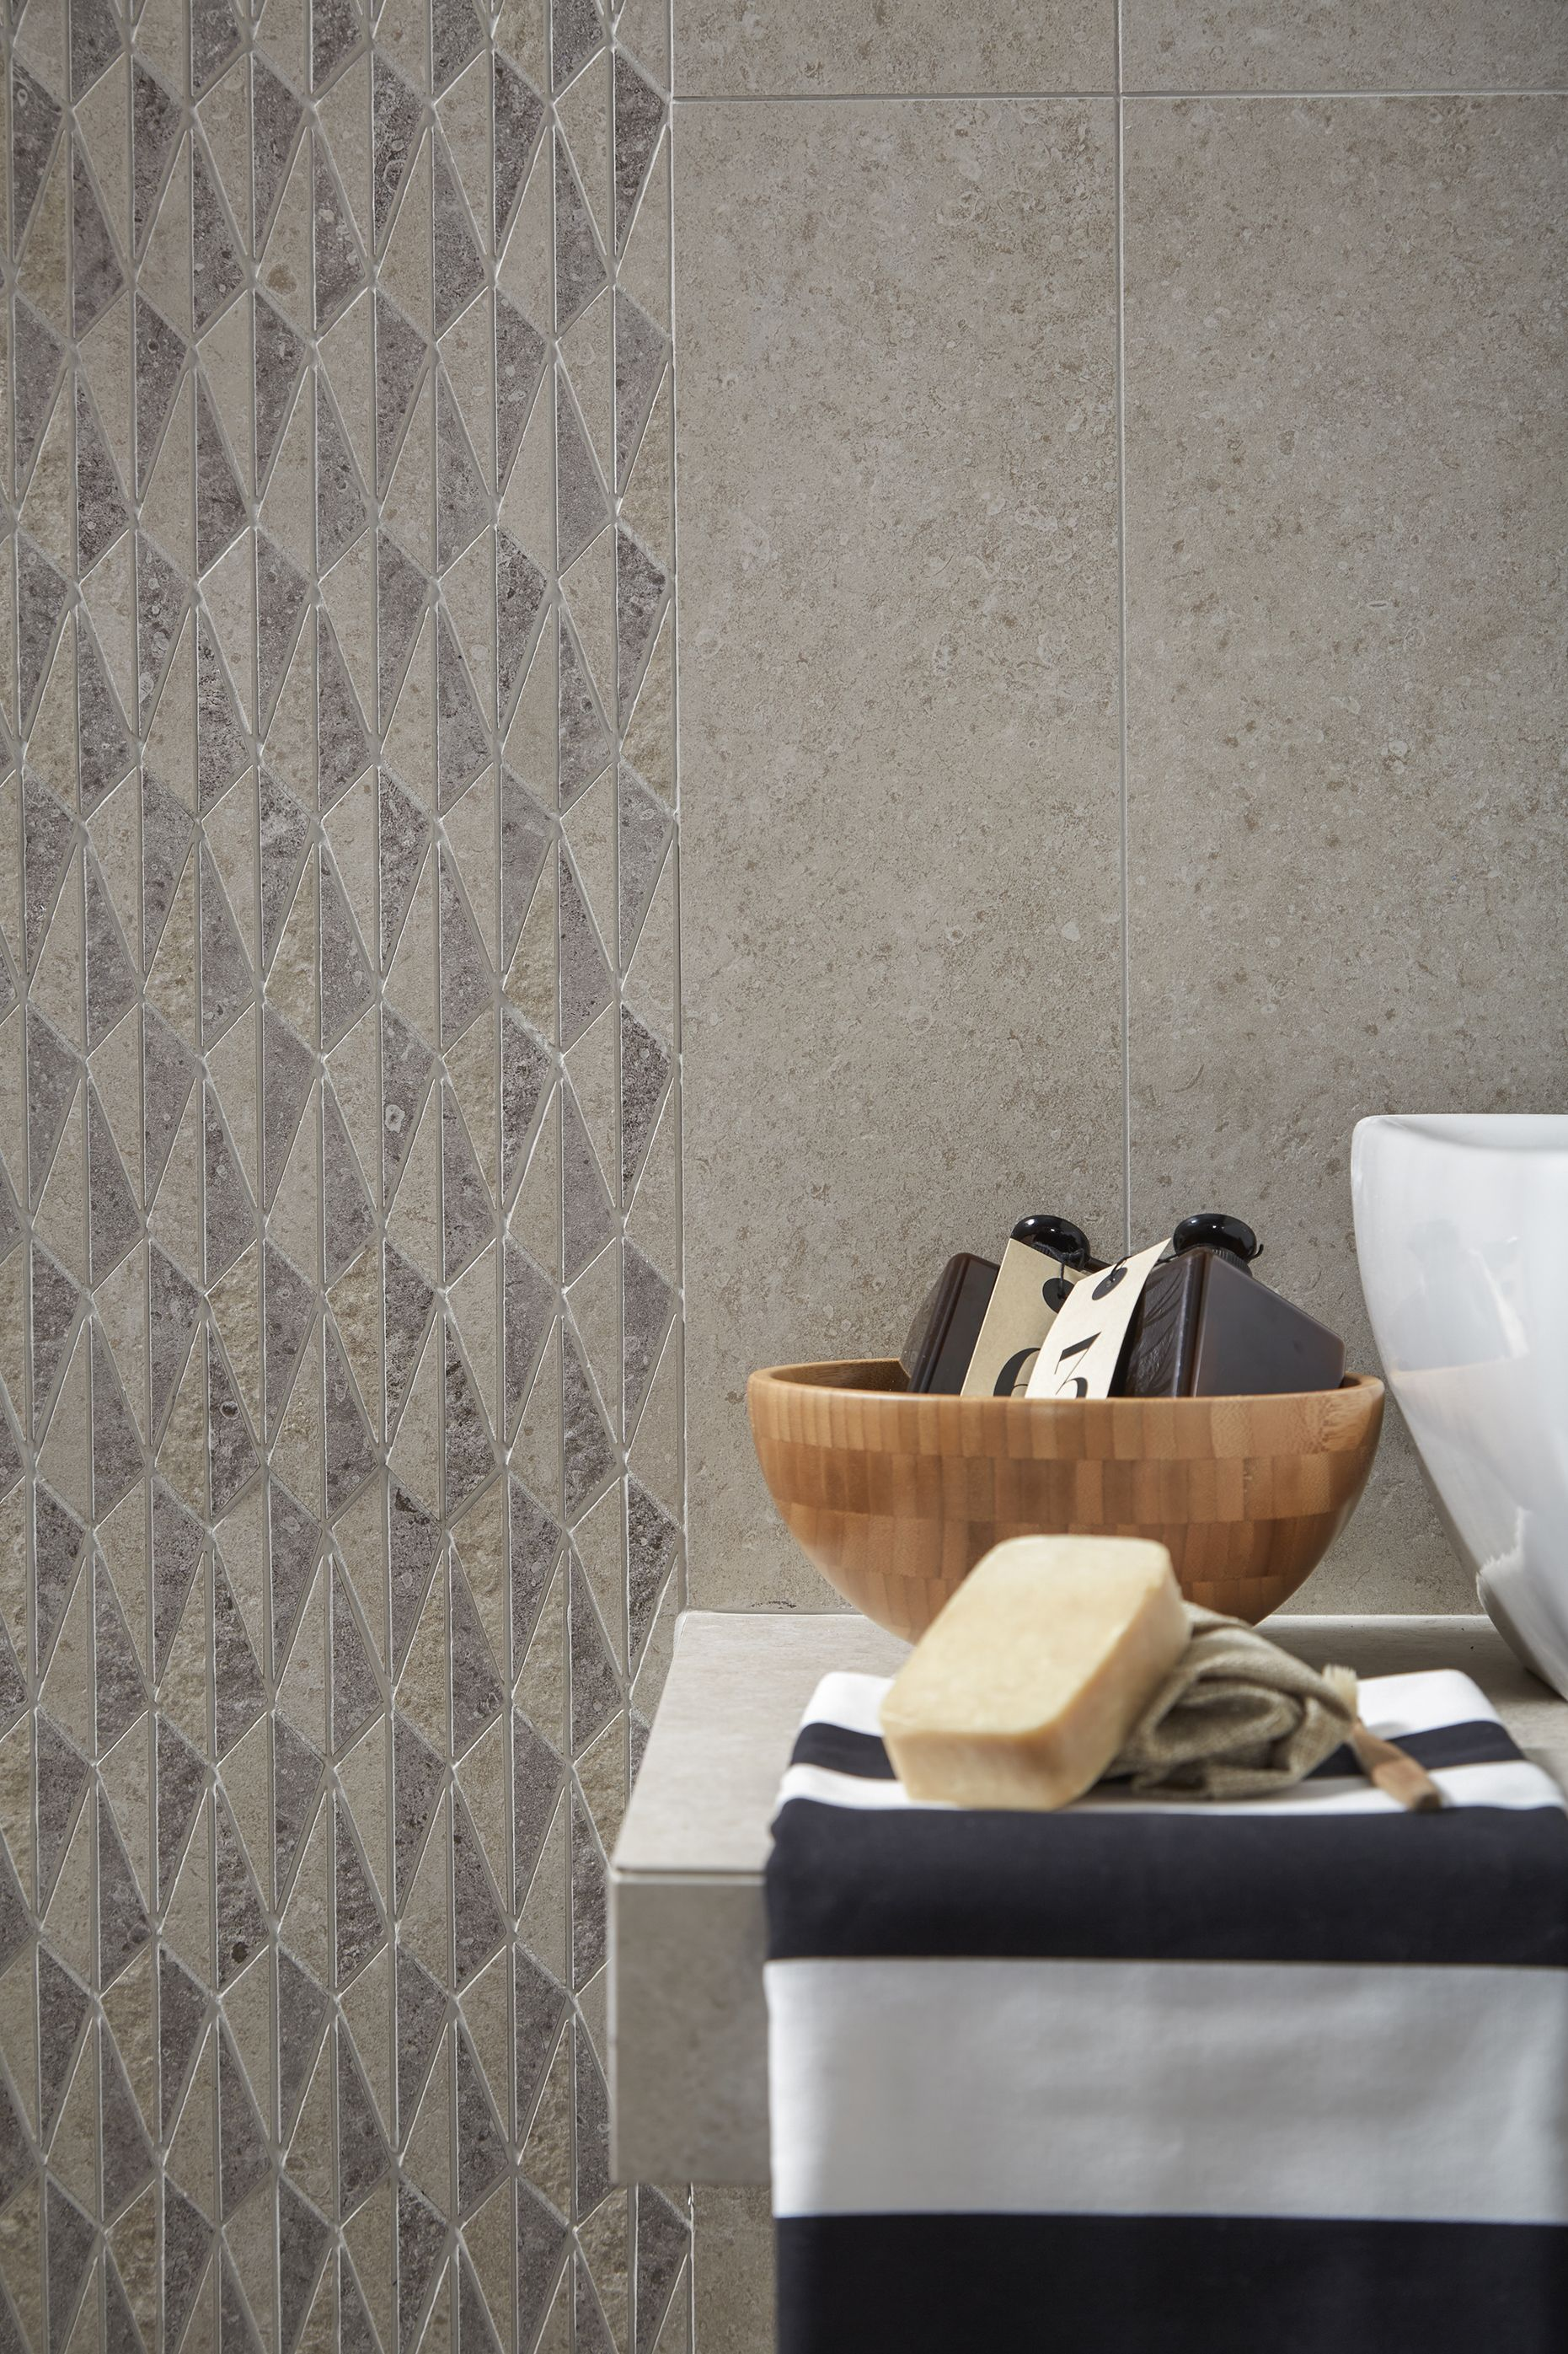 Feruni Decor Tiles Are Designed To Stimulate Any Plain And Monotonous Wall Or Floor By Adding Interest And Flavour In Any R Tiles Stone Collection Stone Design